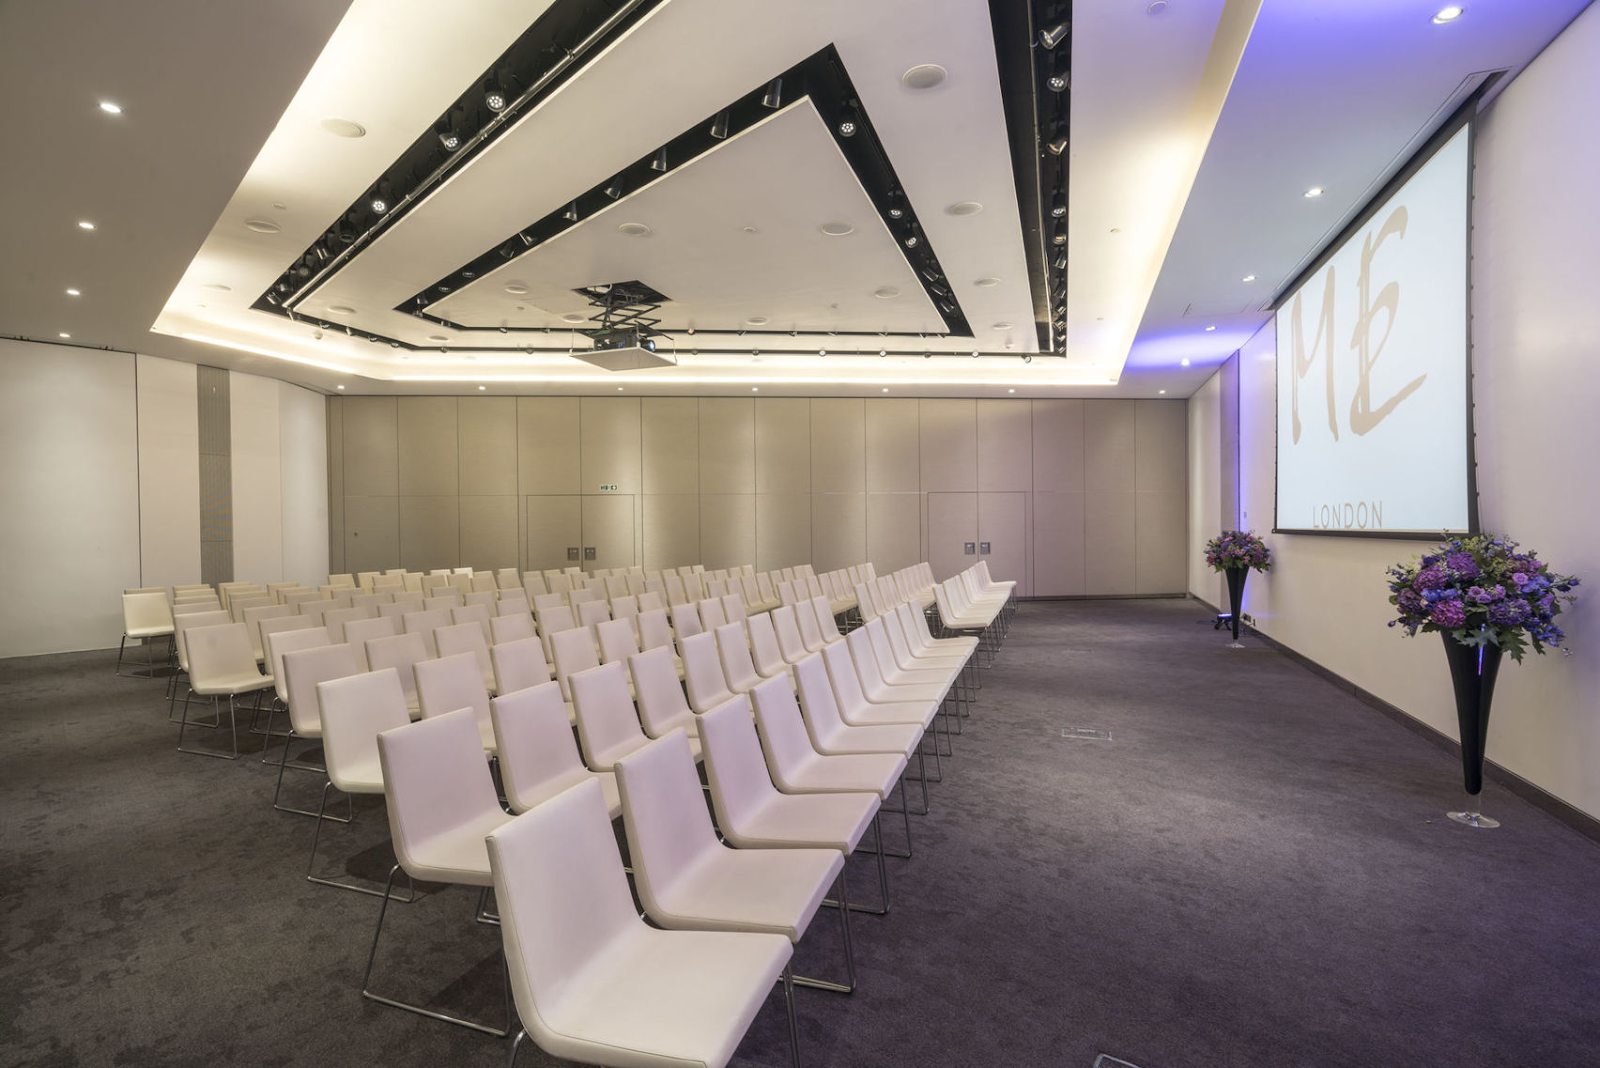 a large white event space with white chairs facing a screen on the wall